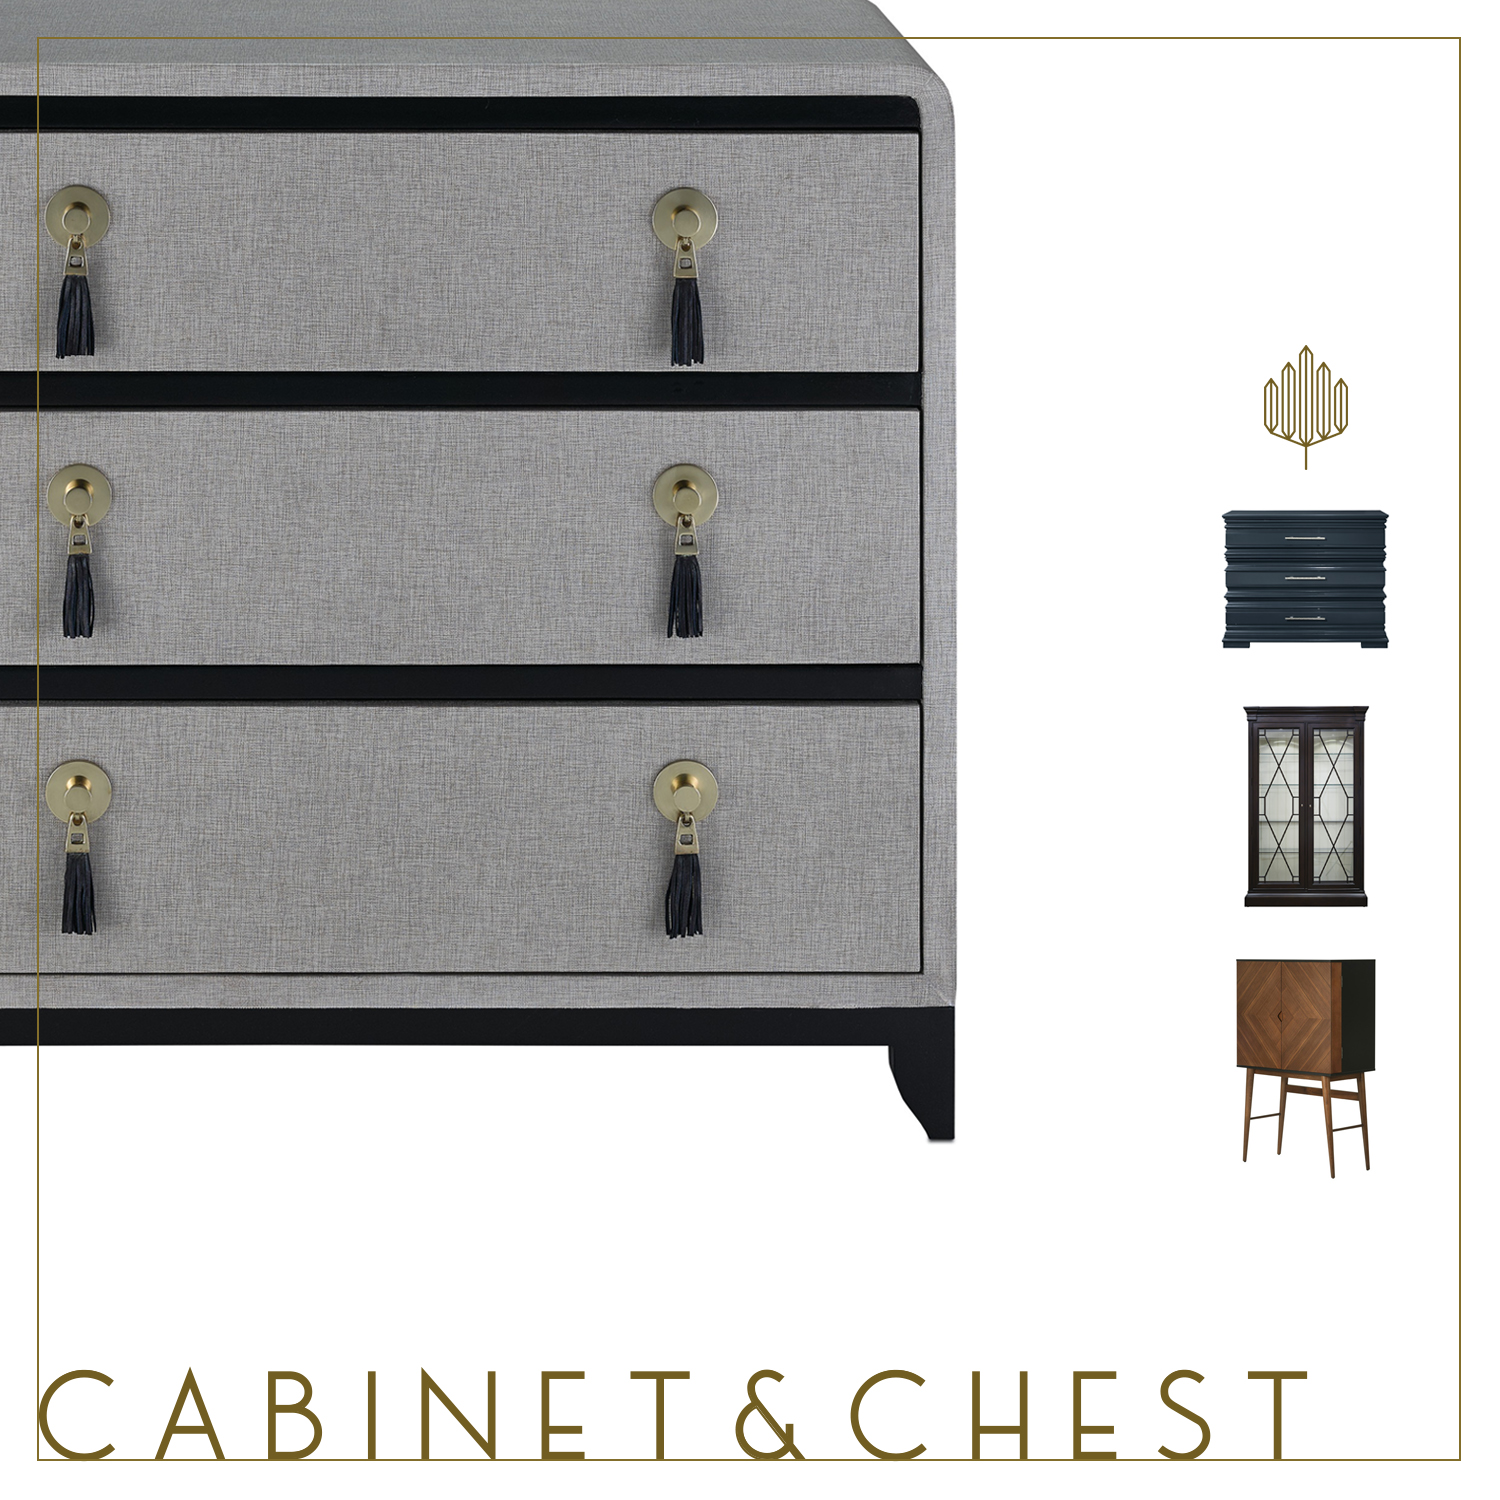 HBLS_Main_Page_CabinetChest.jpg